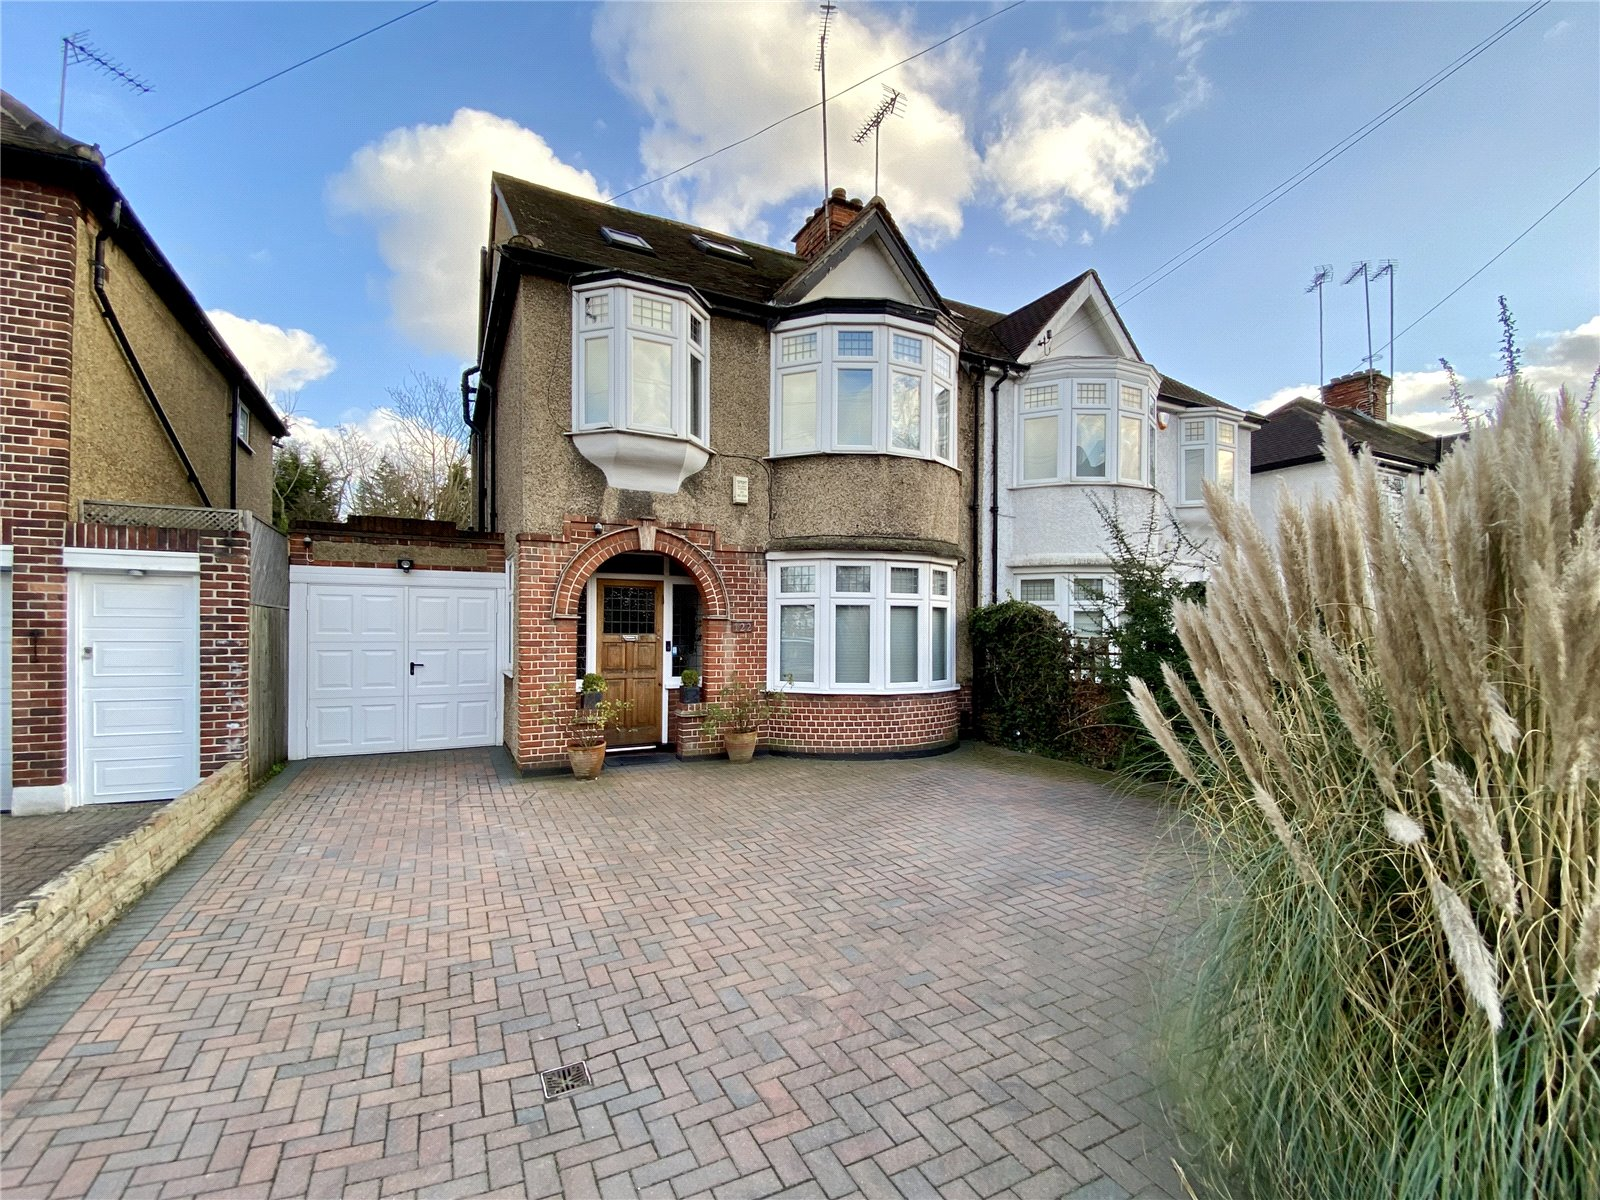 4 bed house for sale in Hendon, NW4 1LJ - Property Image 1